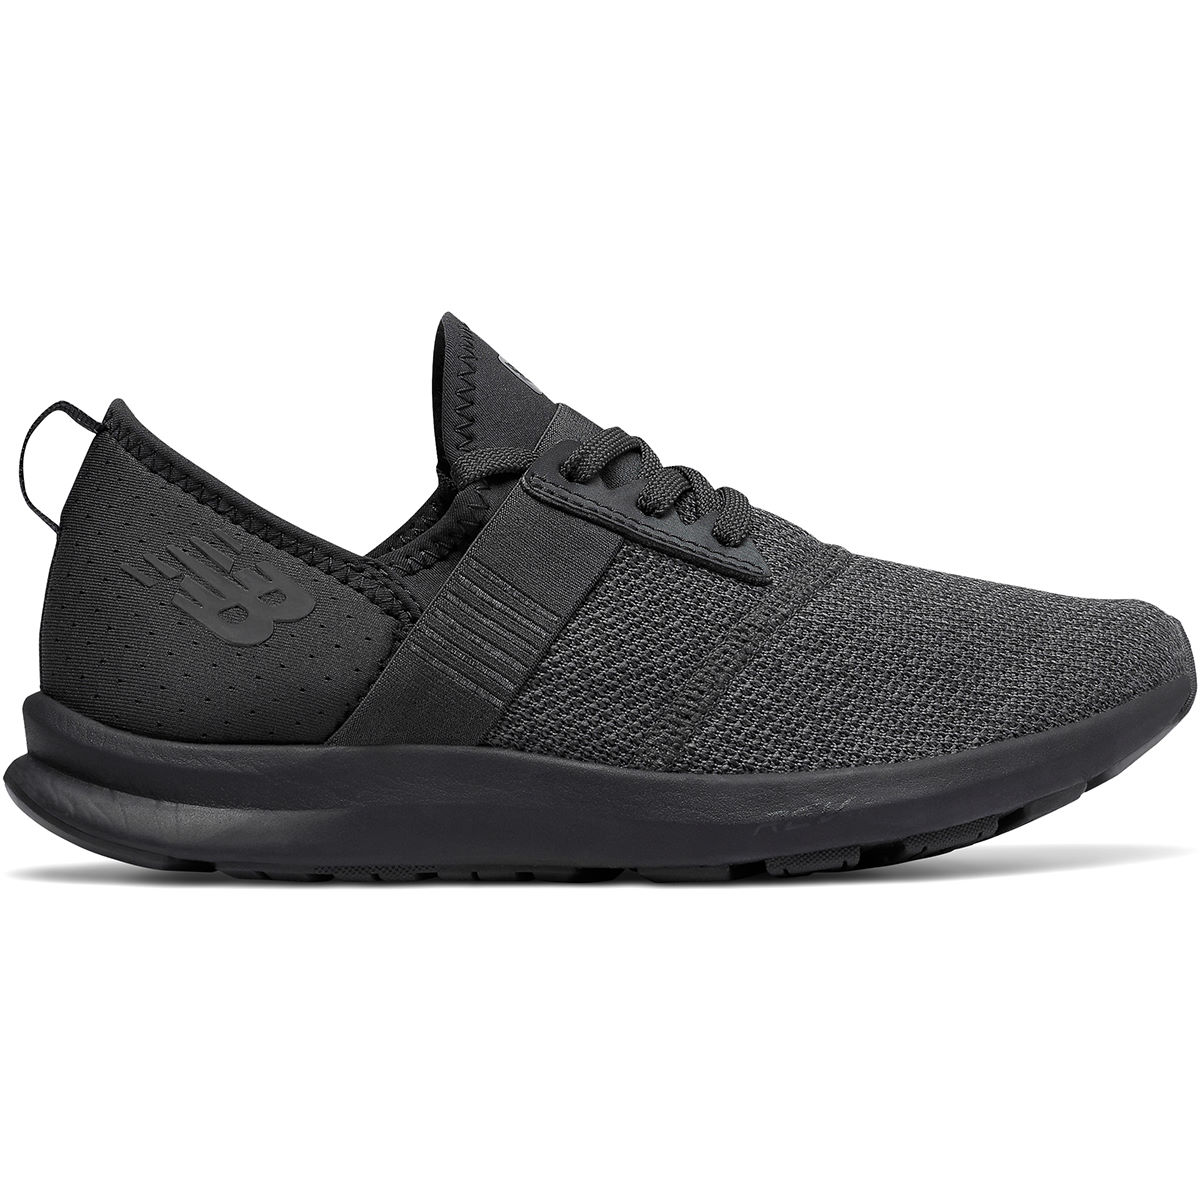 New Balance Women's Nergize Shoes - Zapatillas de entrenamiento